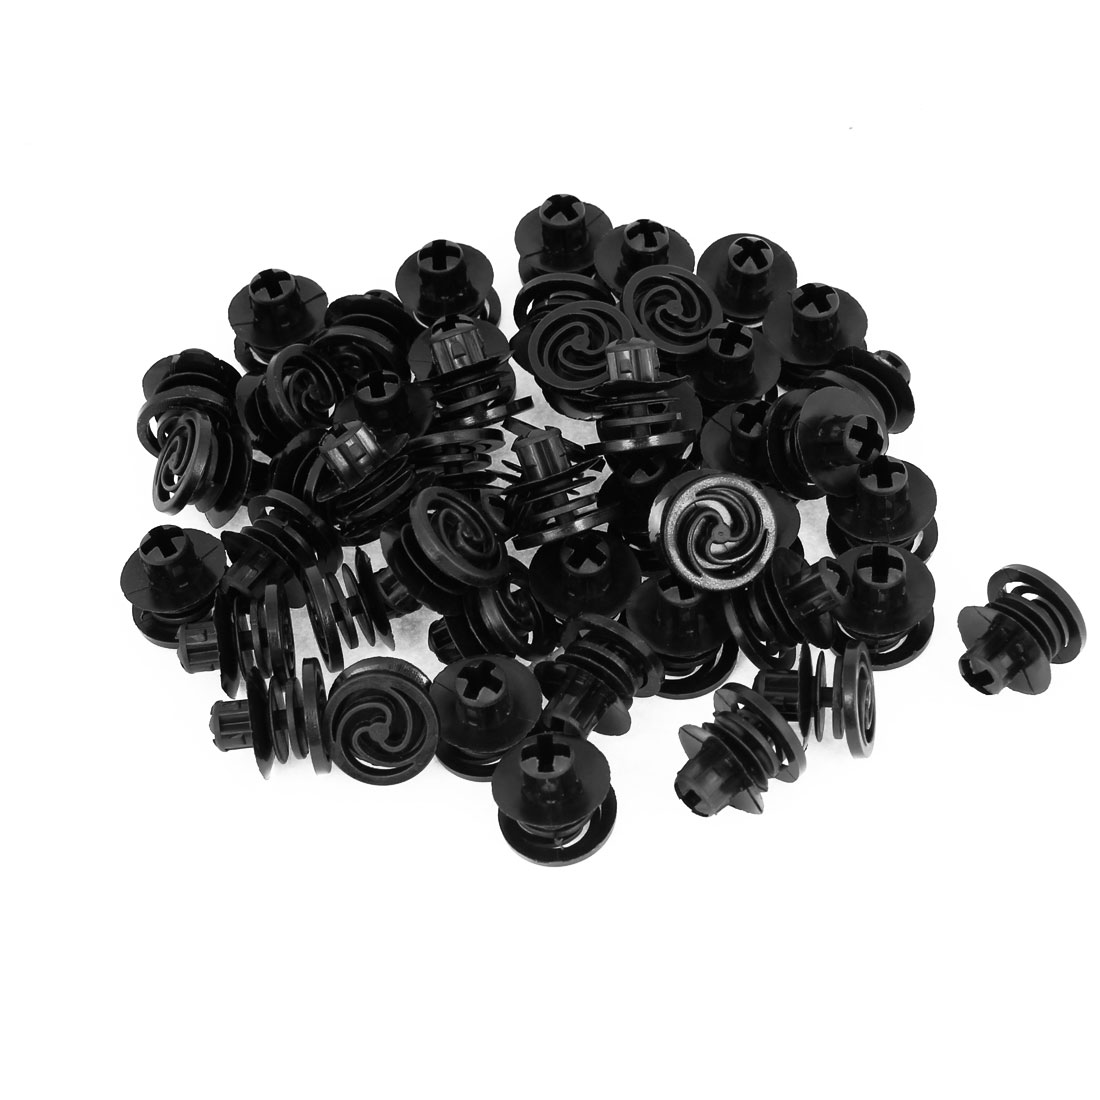 100 Pcs Vehicle 10.5mm Hole Black Door Plastic Replacement Rivets Fasteners